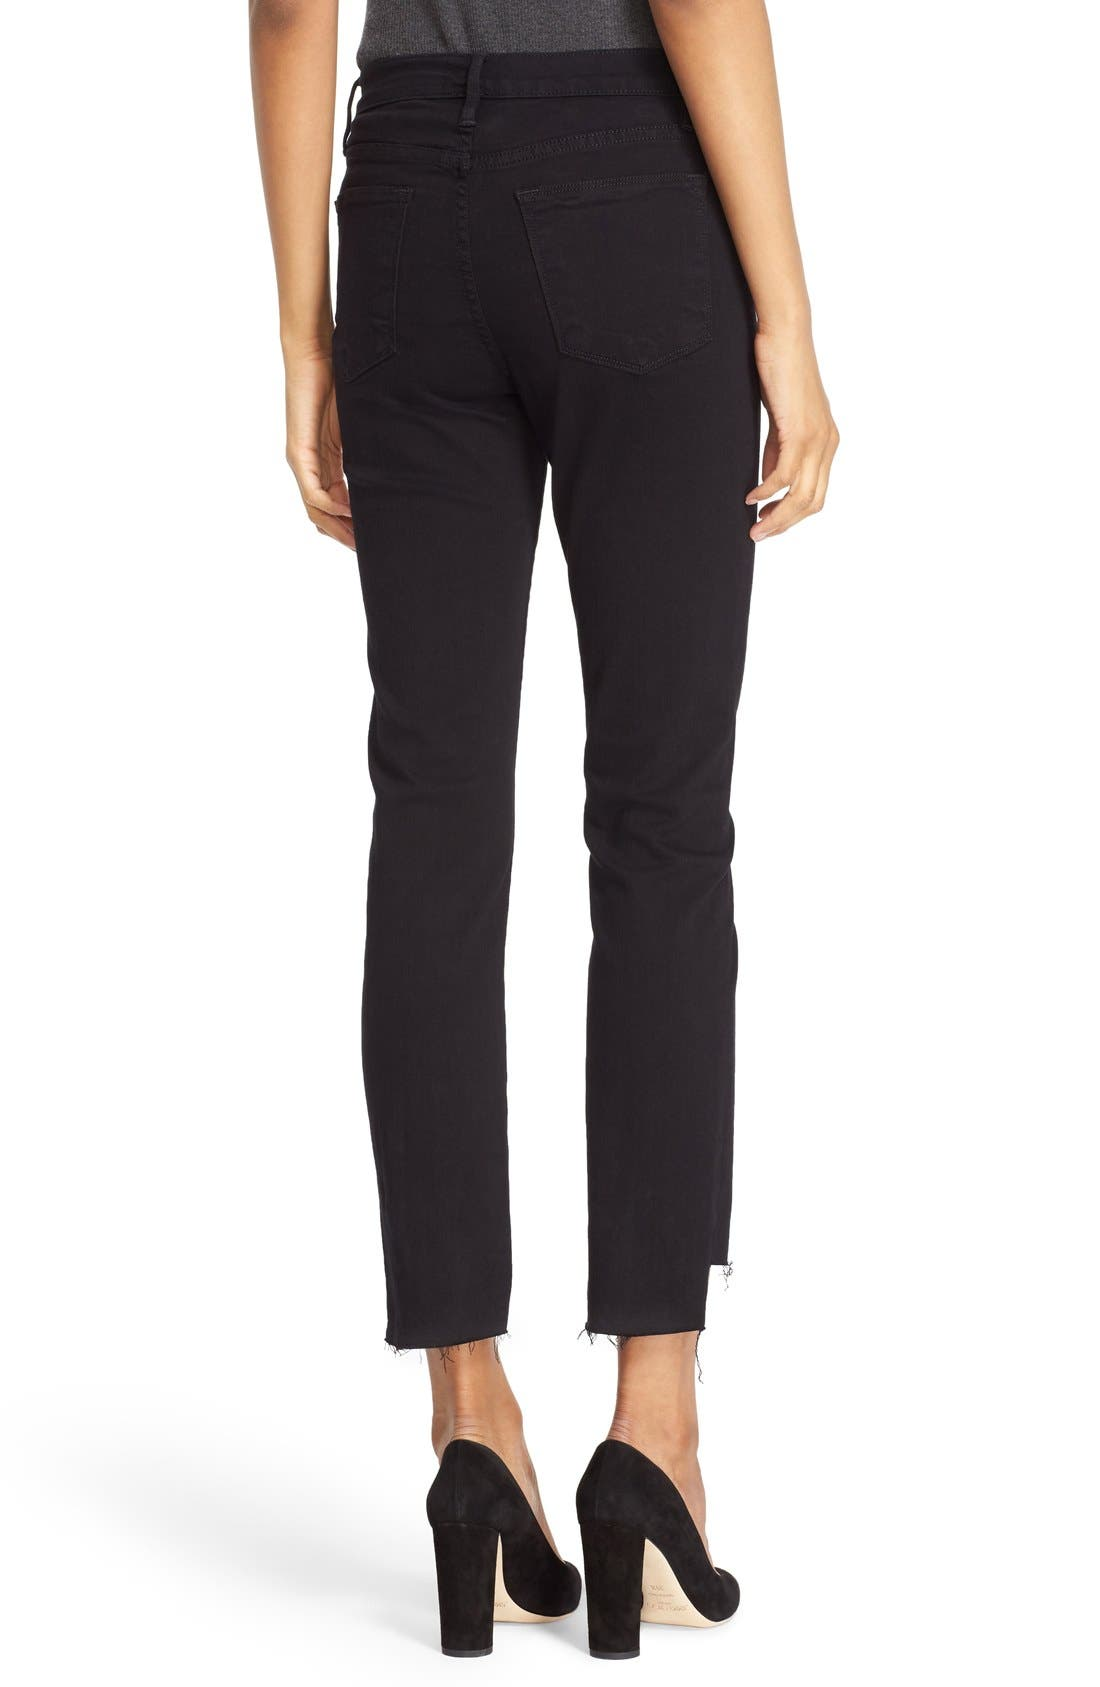 FRAME, Le High Straight High Waist Staggered Hem Jeans, Alternate thumbnail 6, color, FILM NOIR